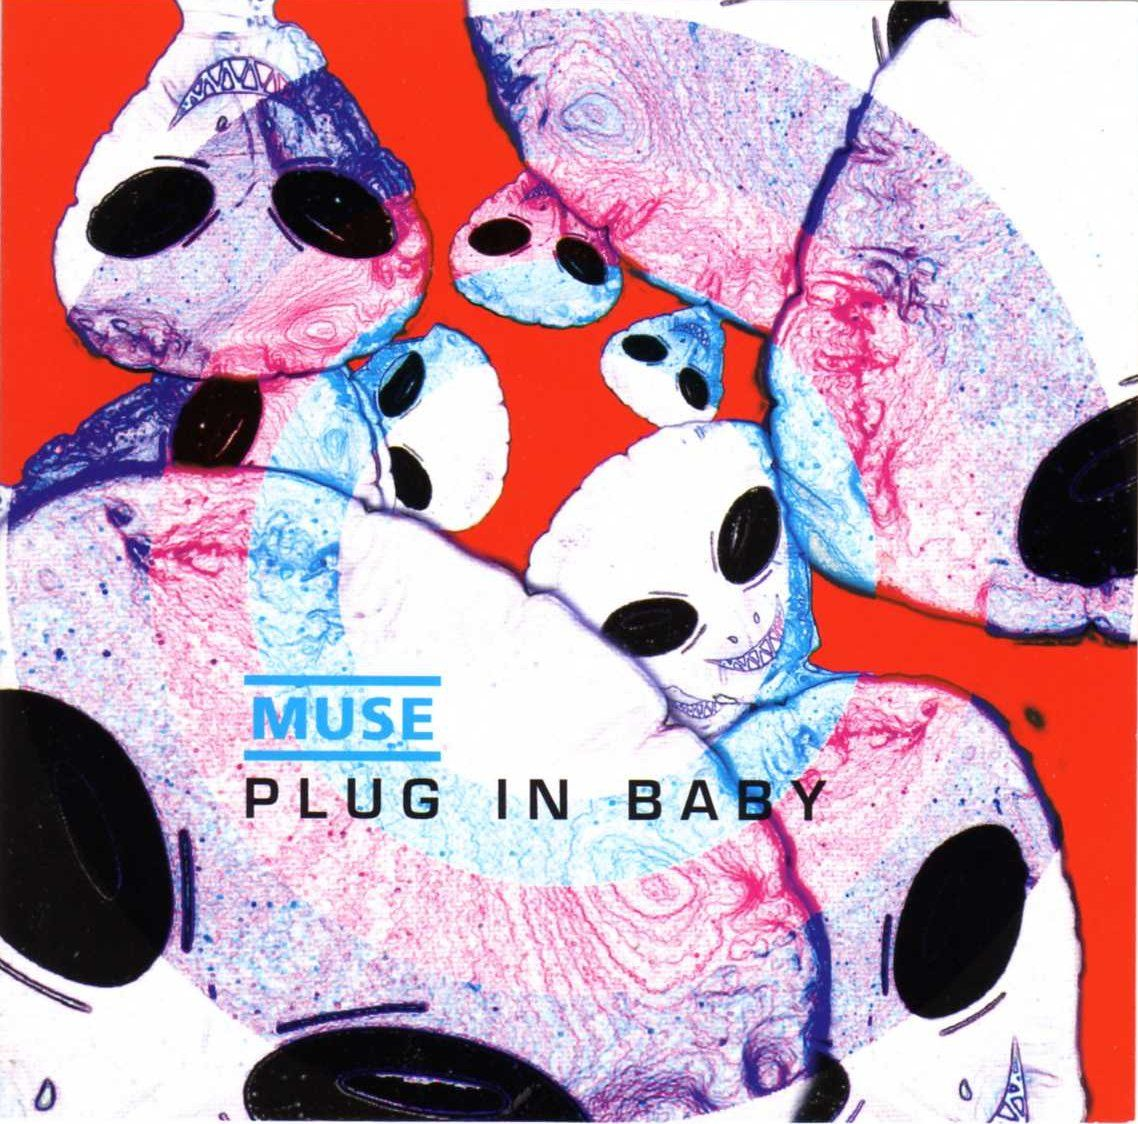 Muse Plug In Baby Single 2001 Piano Sheet Music Free Piano